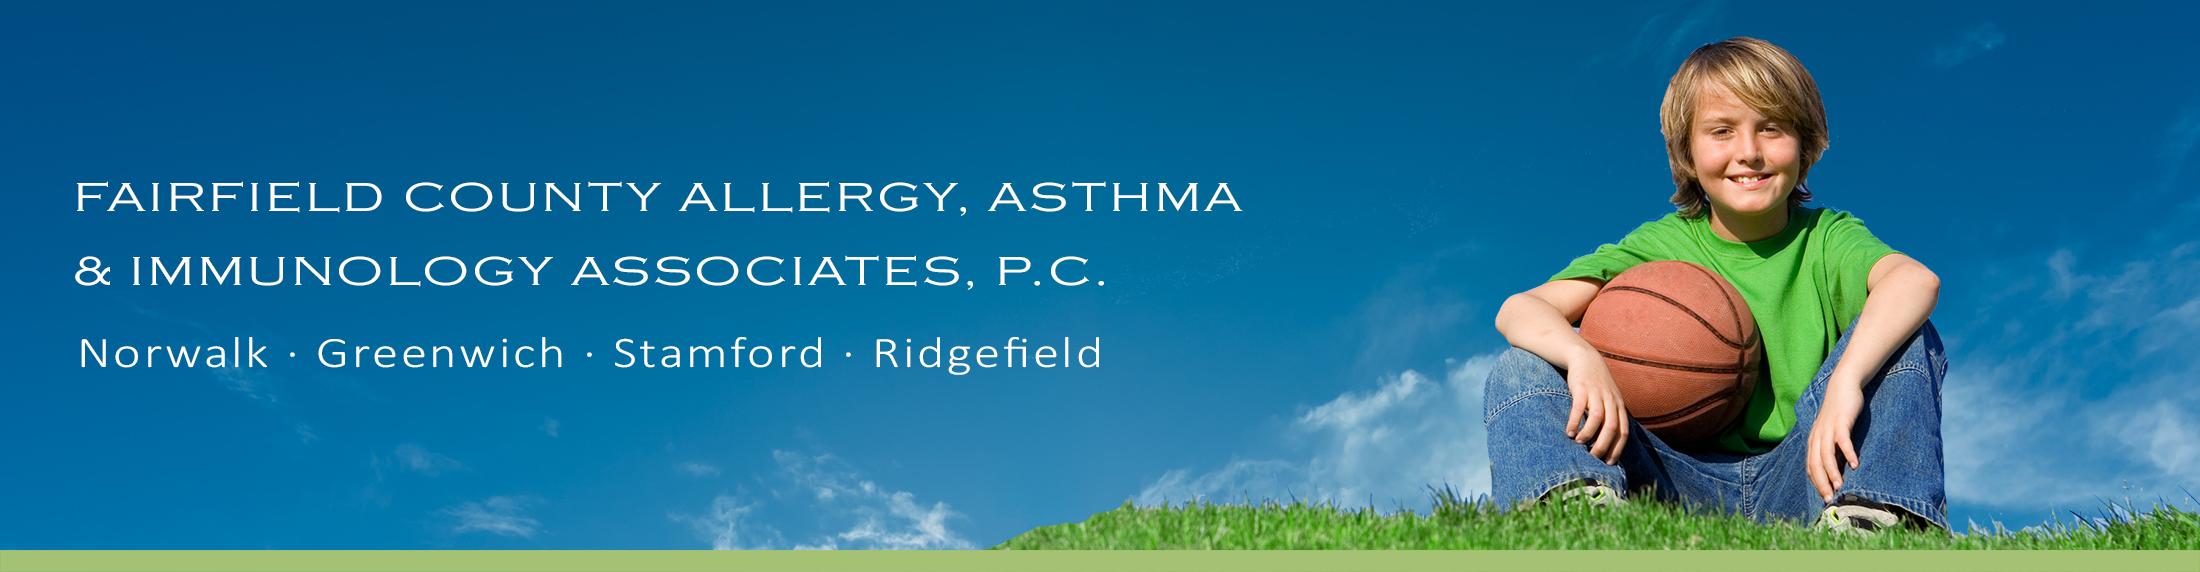 About Fairfield County Allergy, Asthma and Immunology Associates